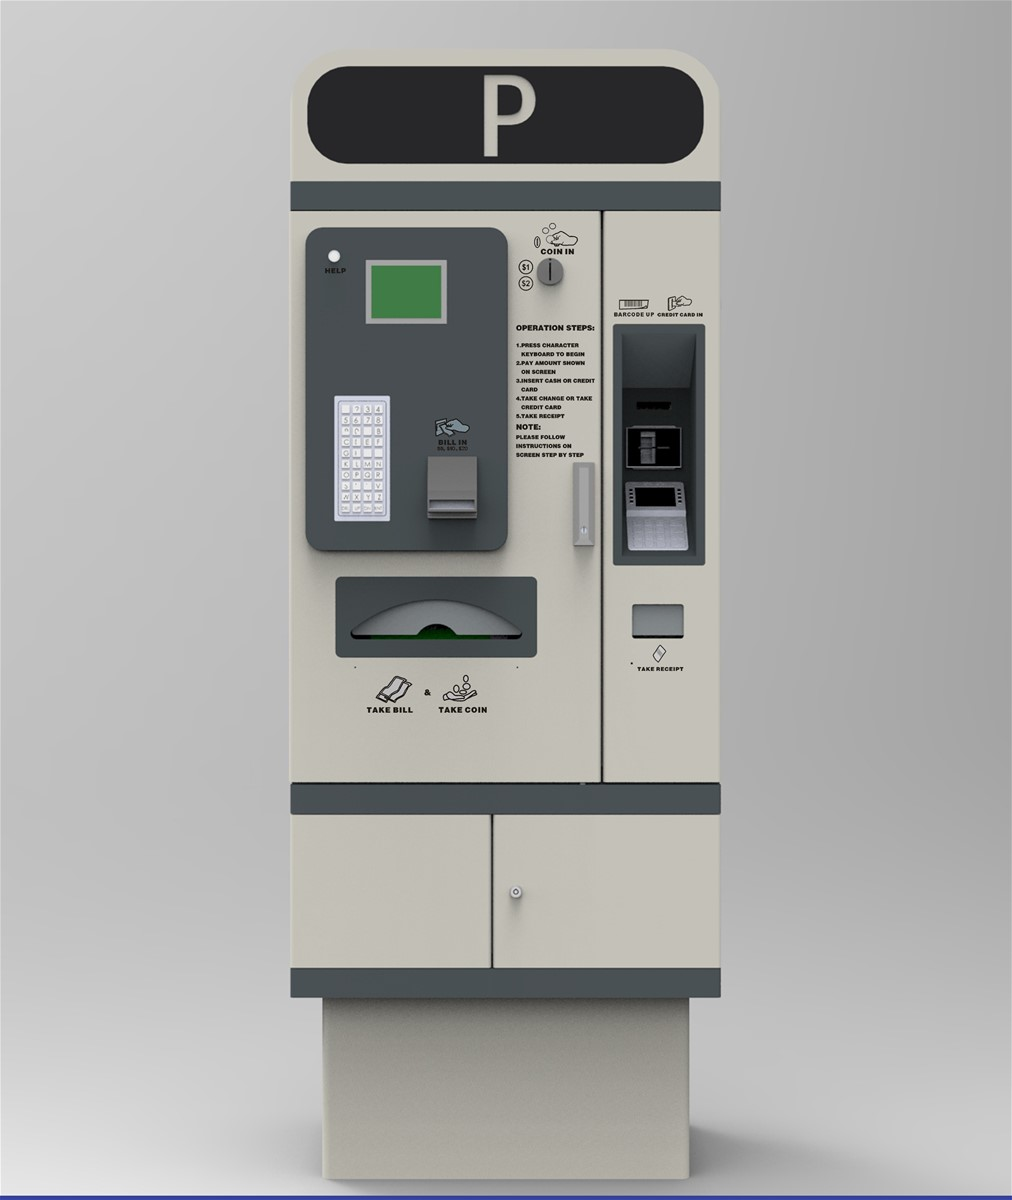 parking system kiosk automatic payment machine auto pay station